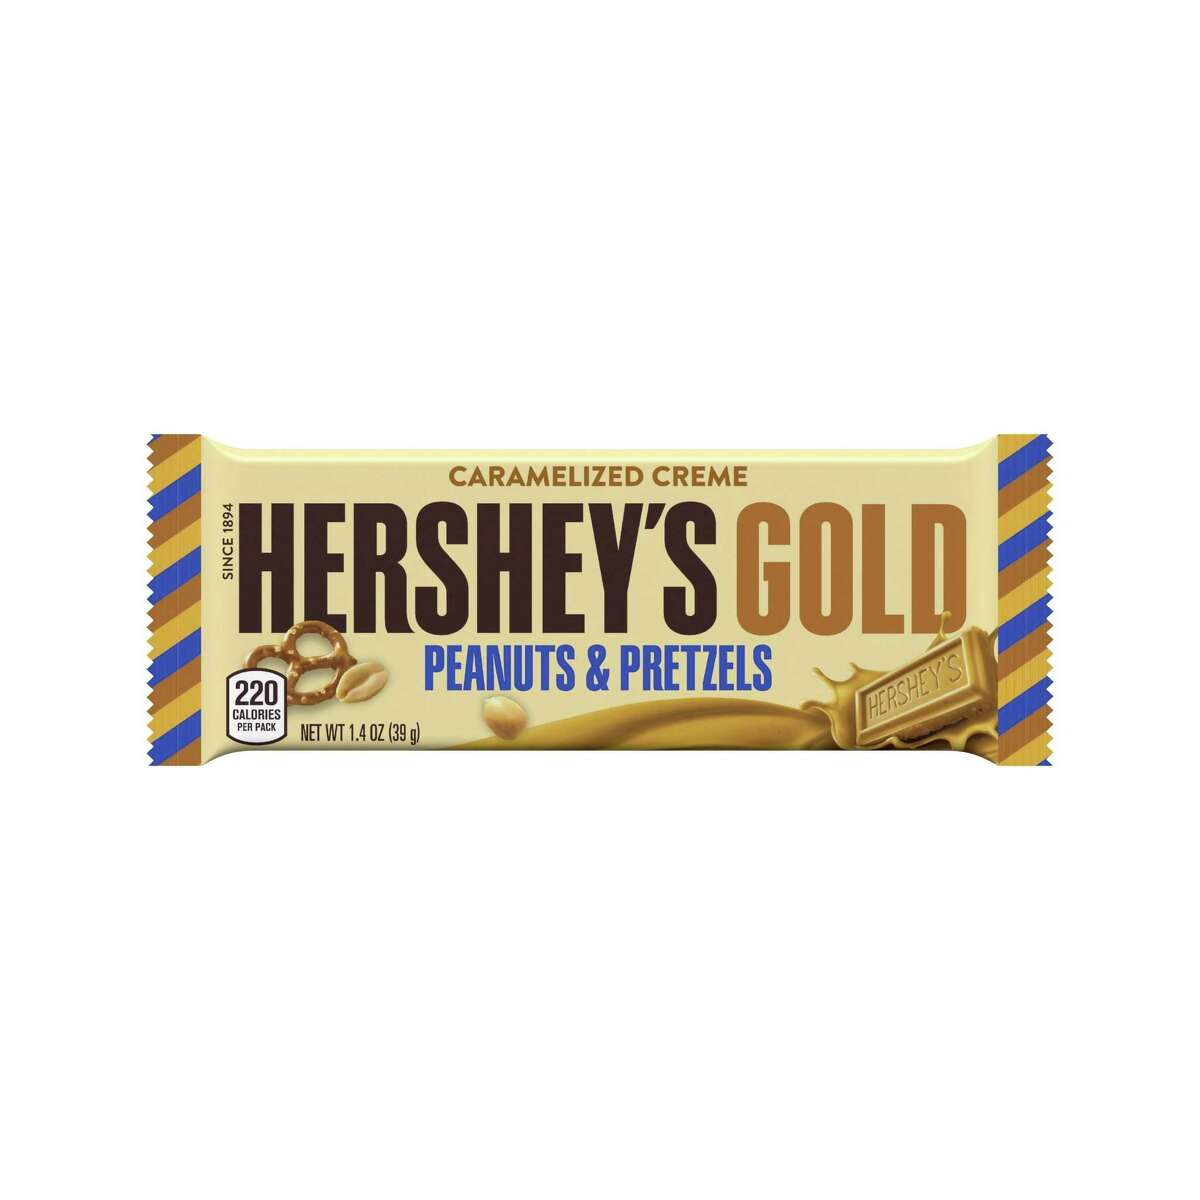 The new candy bar Hershey's Gold will go on sale Dec. 1. It's described as a caramelized cream bar embedded with salty peanut and pretzel bits.